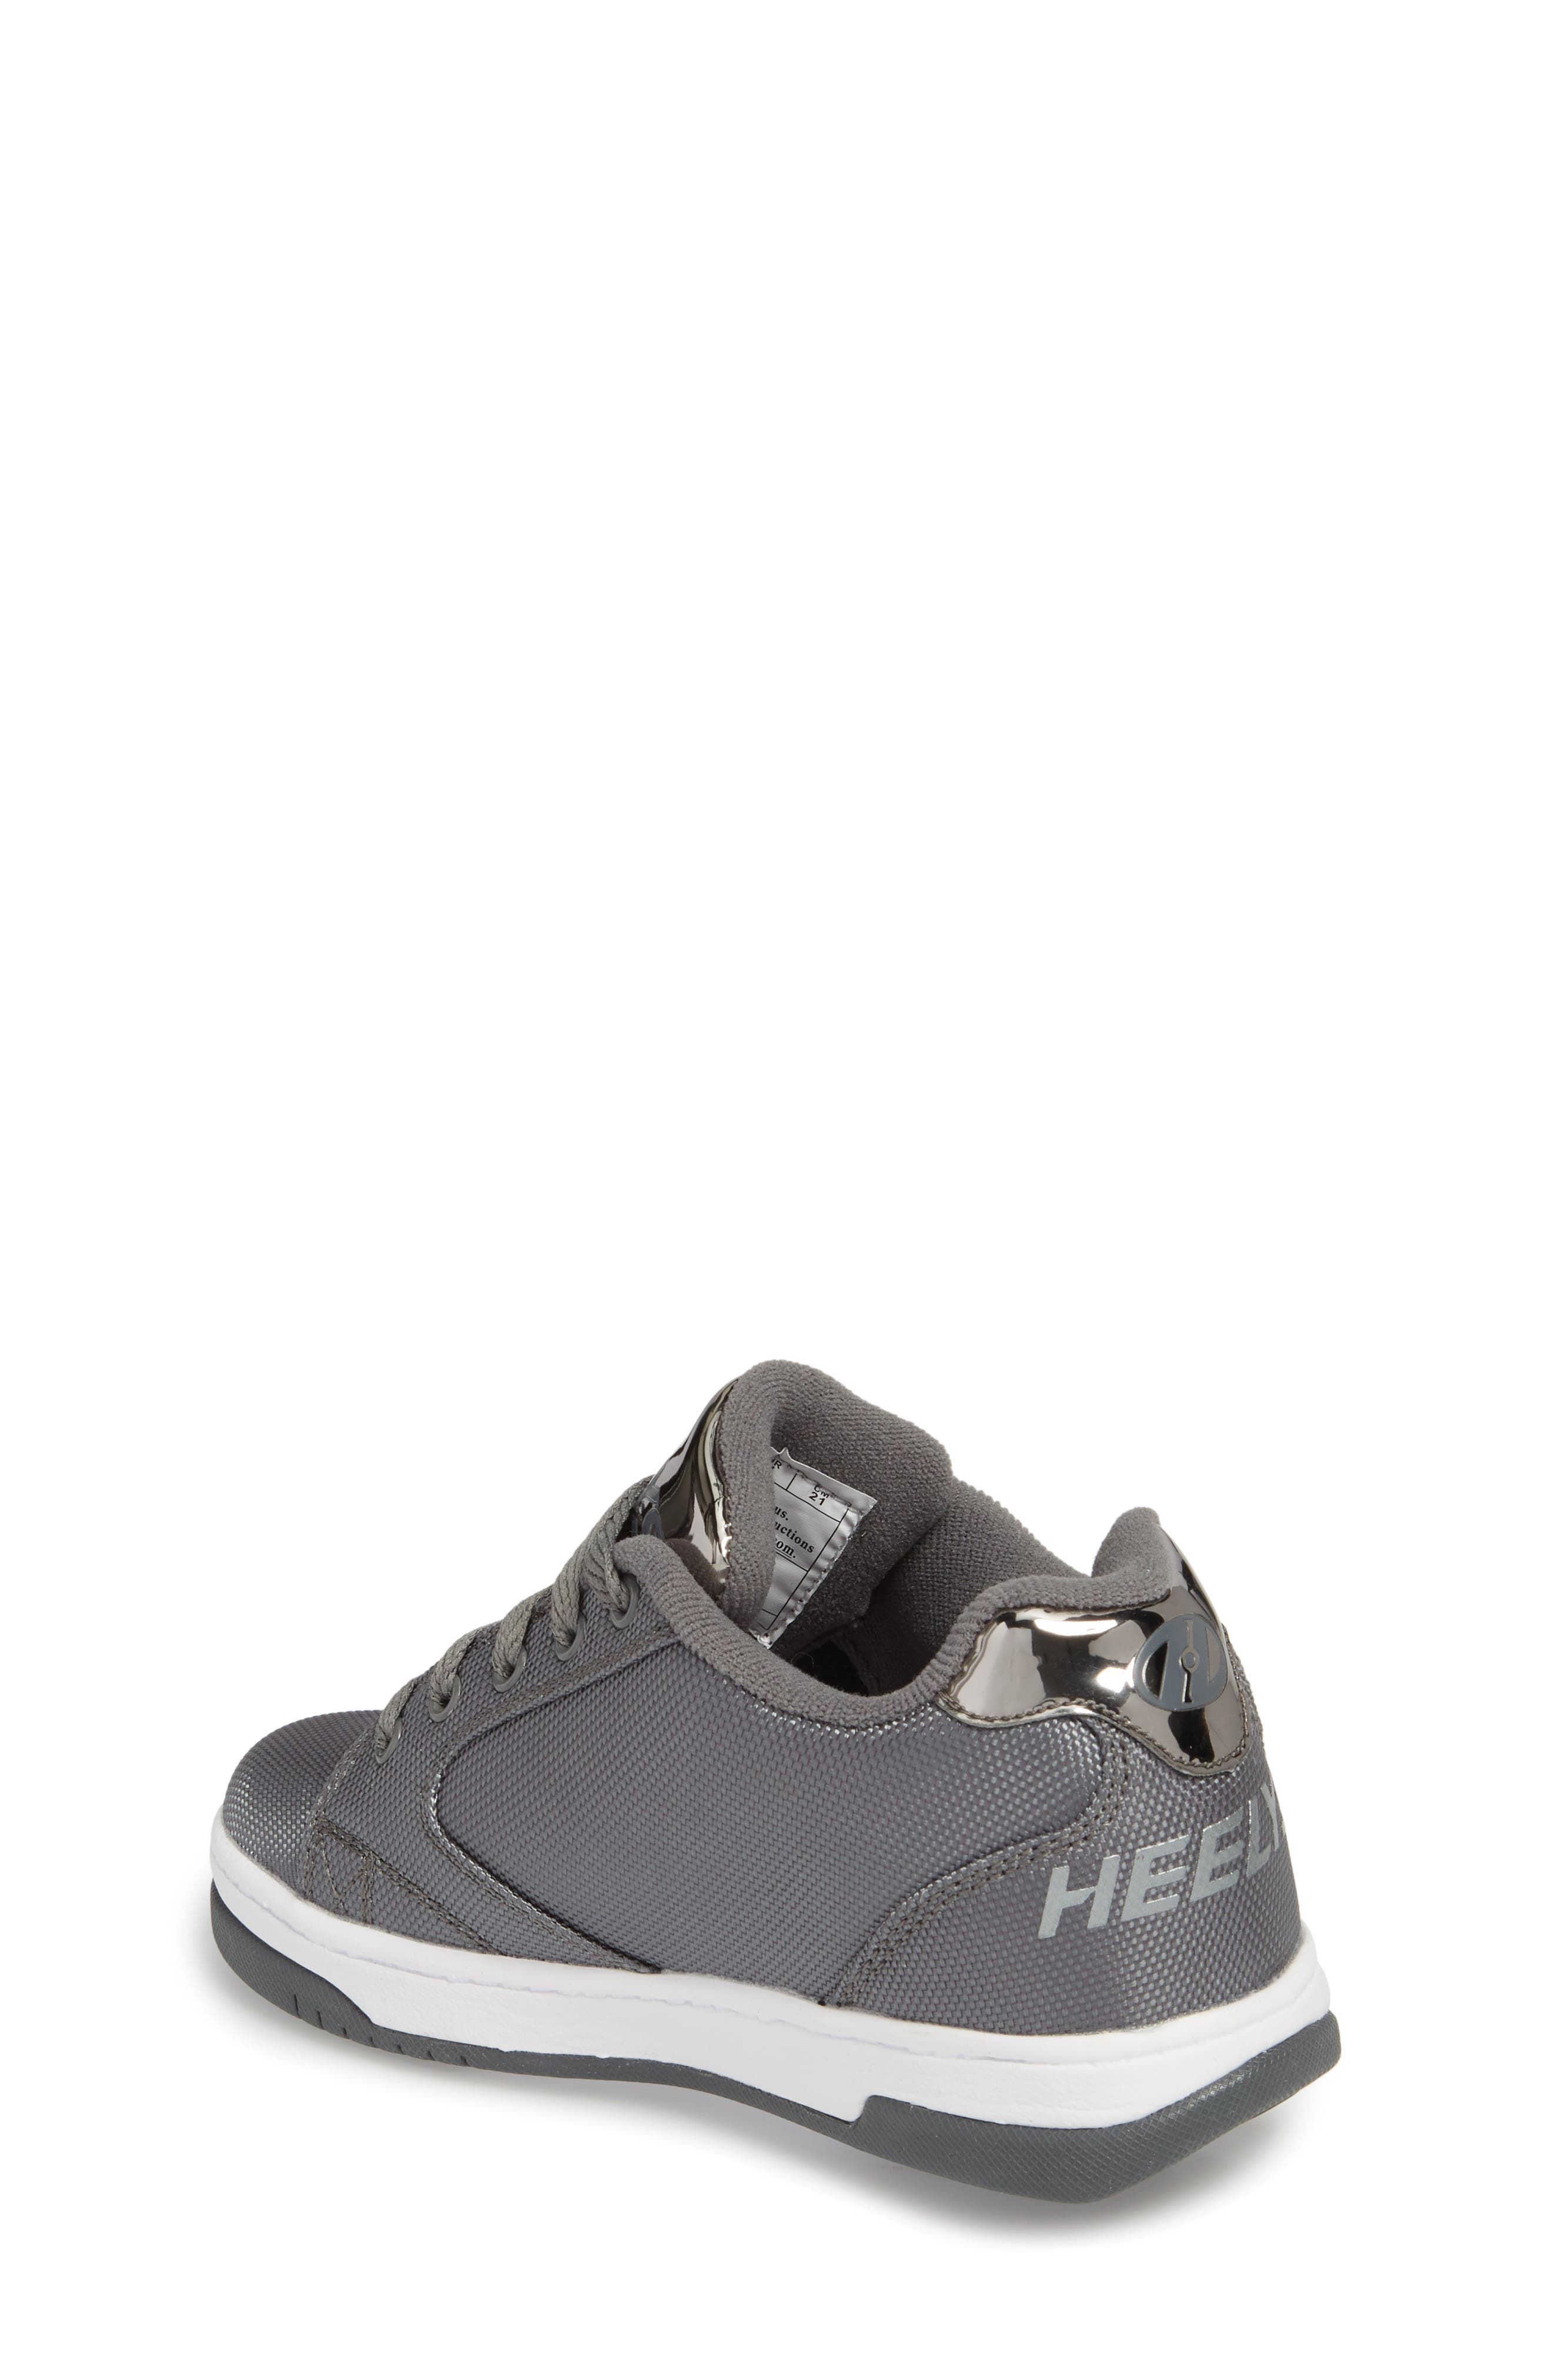 Heels Propel Ballistic Sneaker,                             Alternate thumbnail 2, color,                             CHARCOAL/ PEWTER